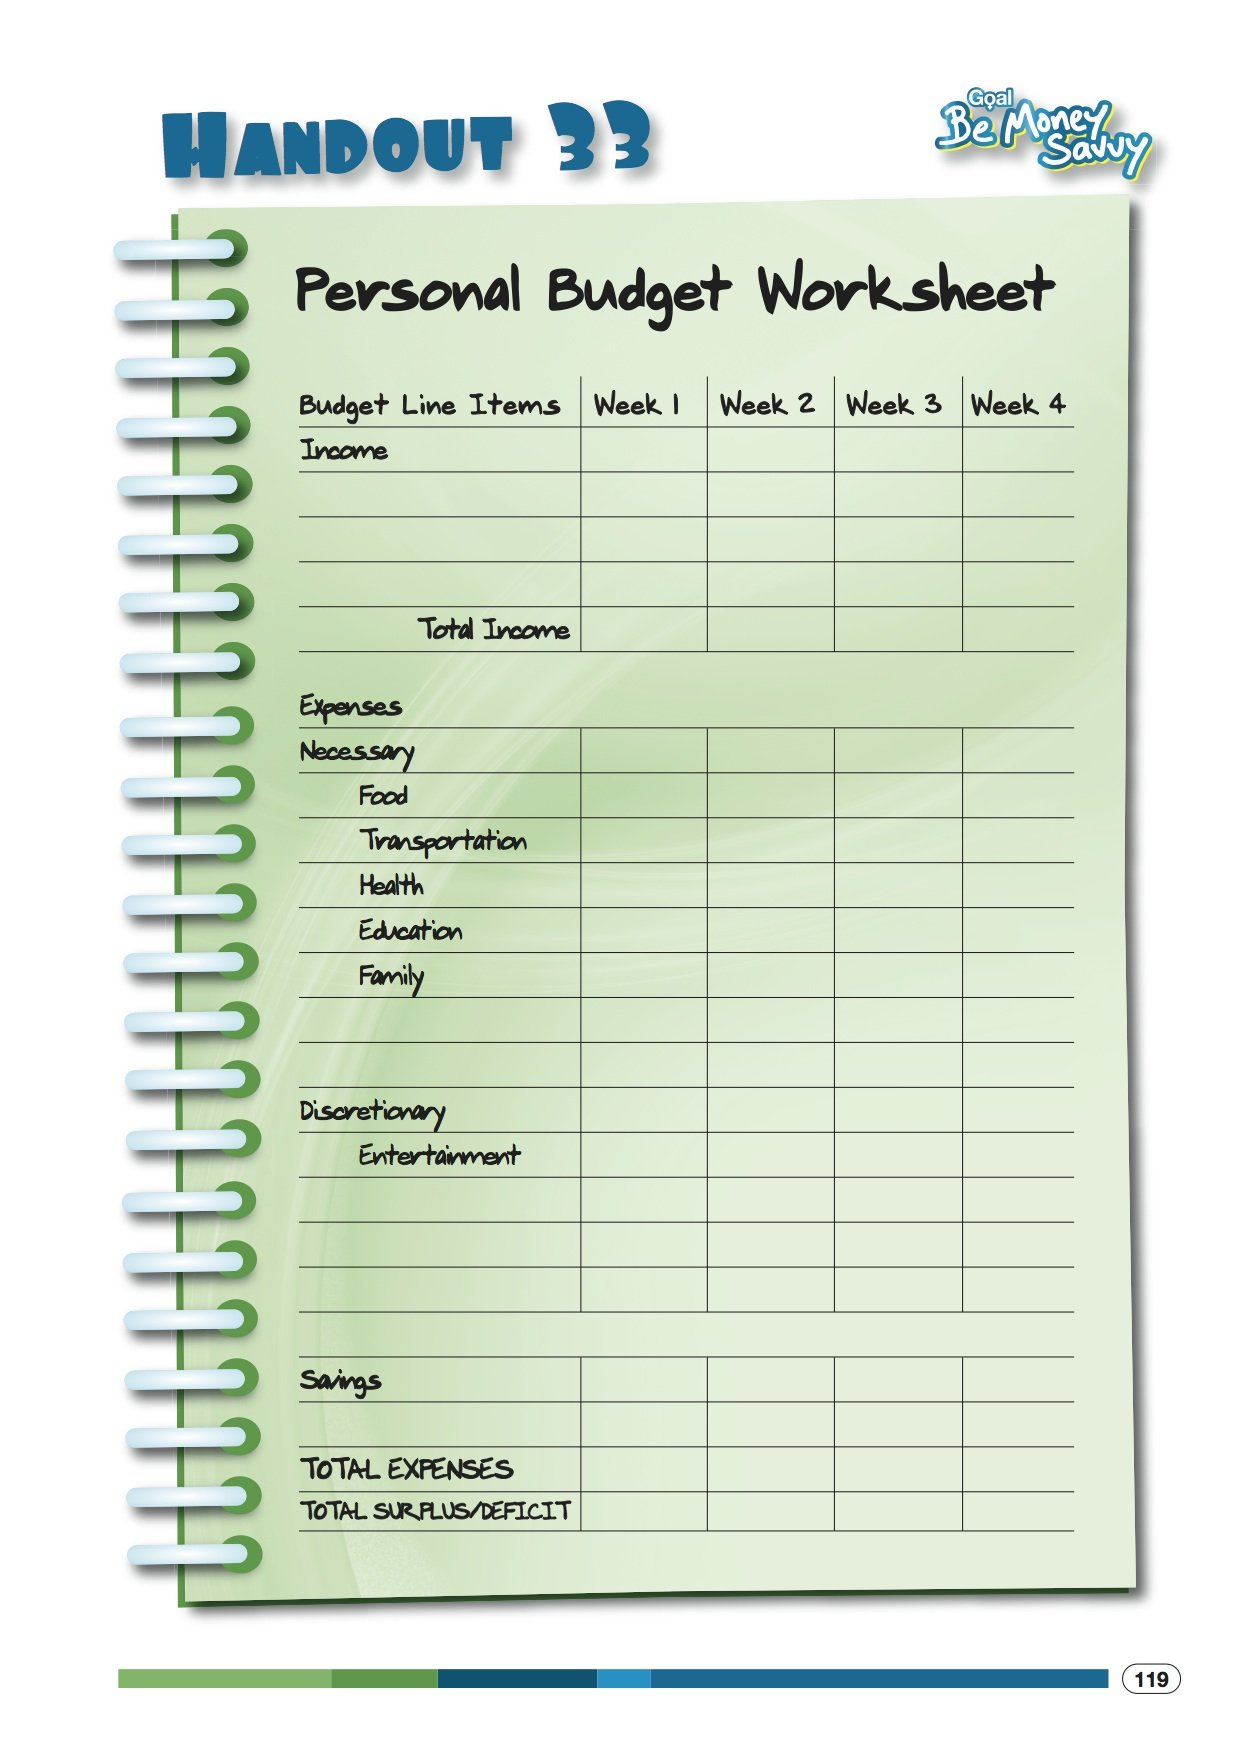 Personal Budget Worksheet